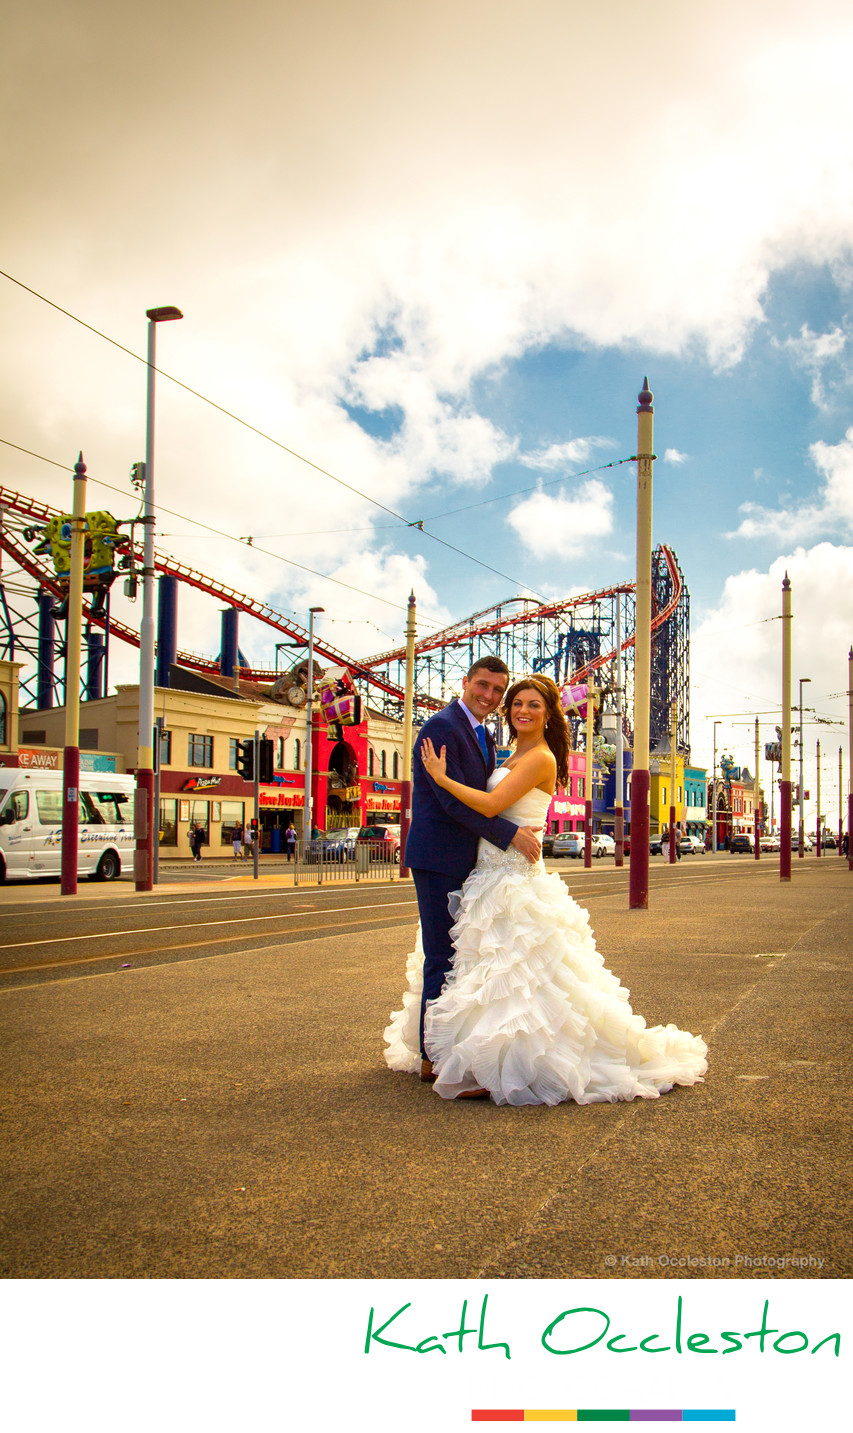 Bride & Groom at The Pleasure Beach